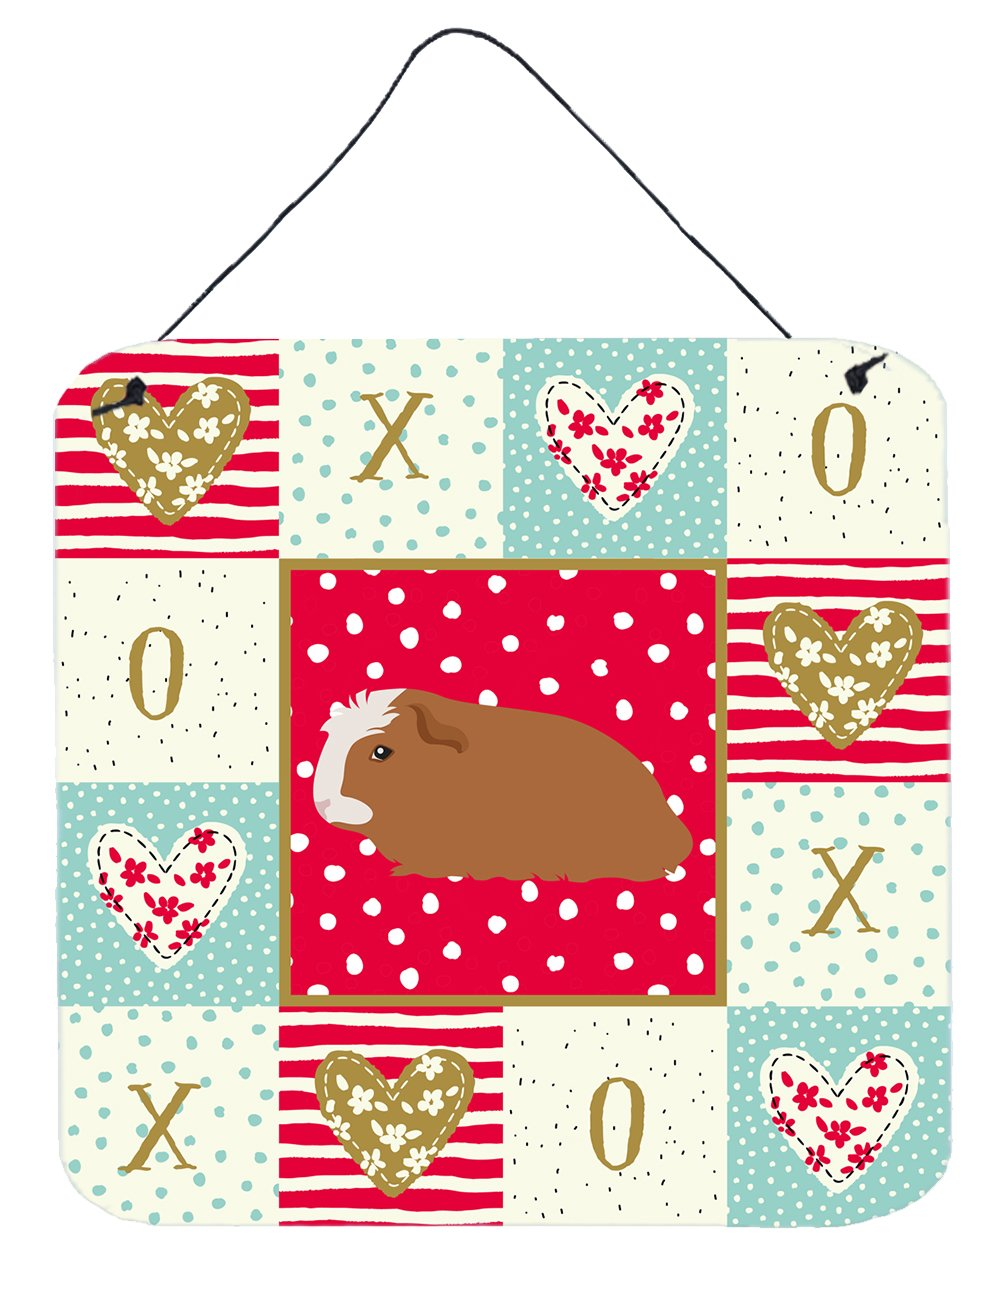 Crested Guinea Pig Love Wall or Door Hanging Prints CK5428DS66 by Caroline's Treasures